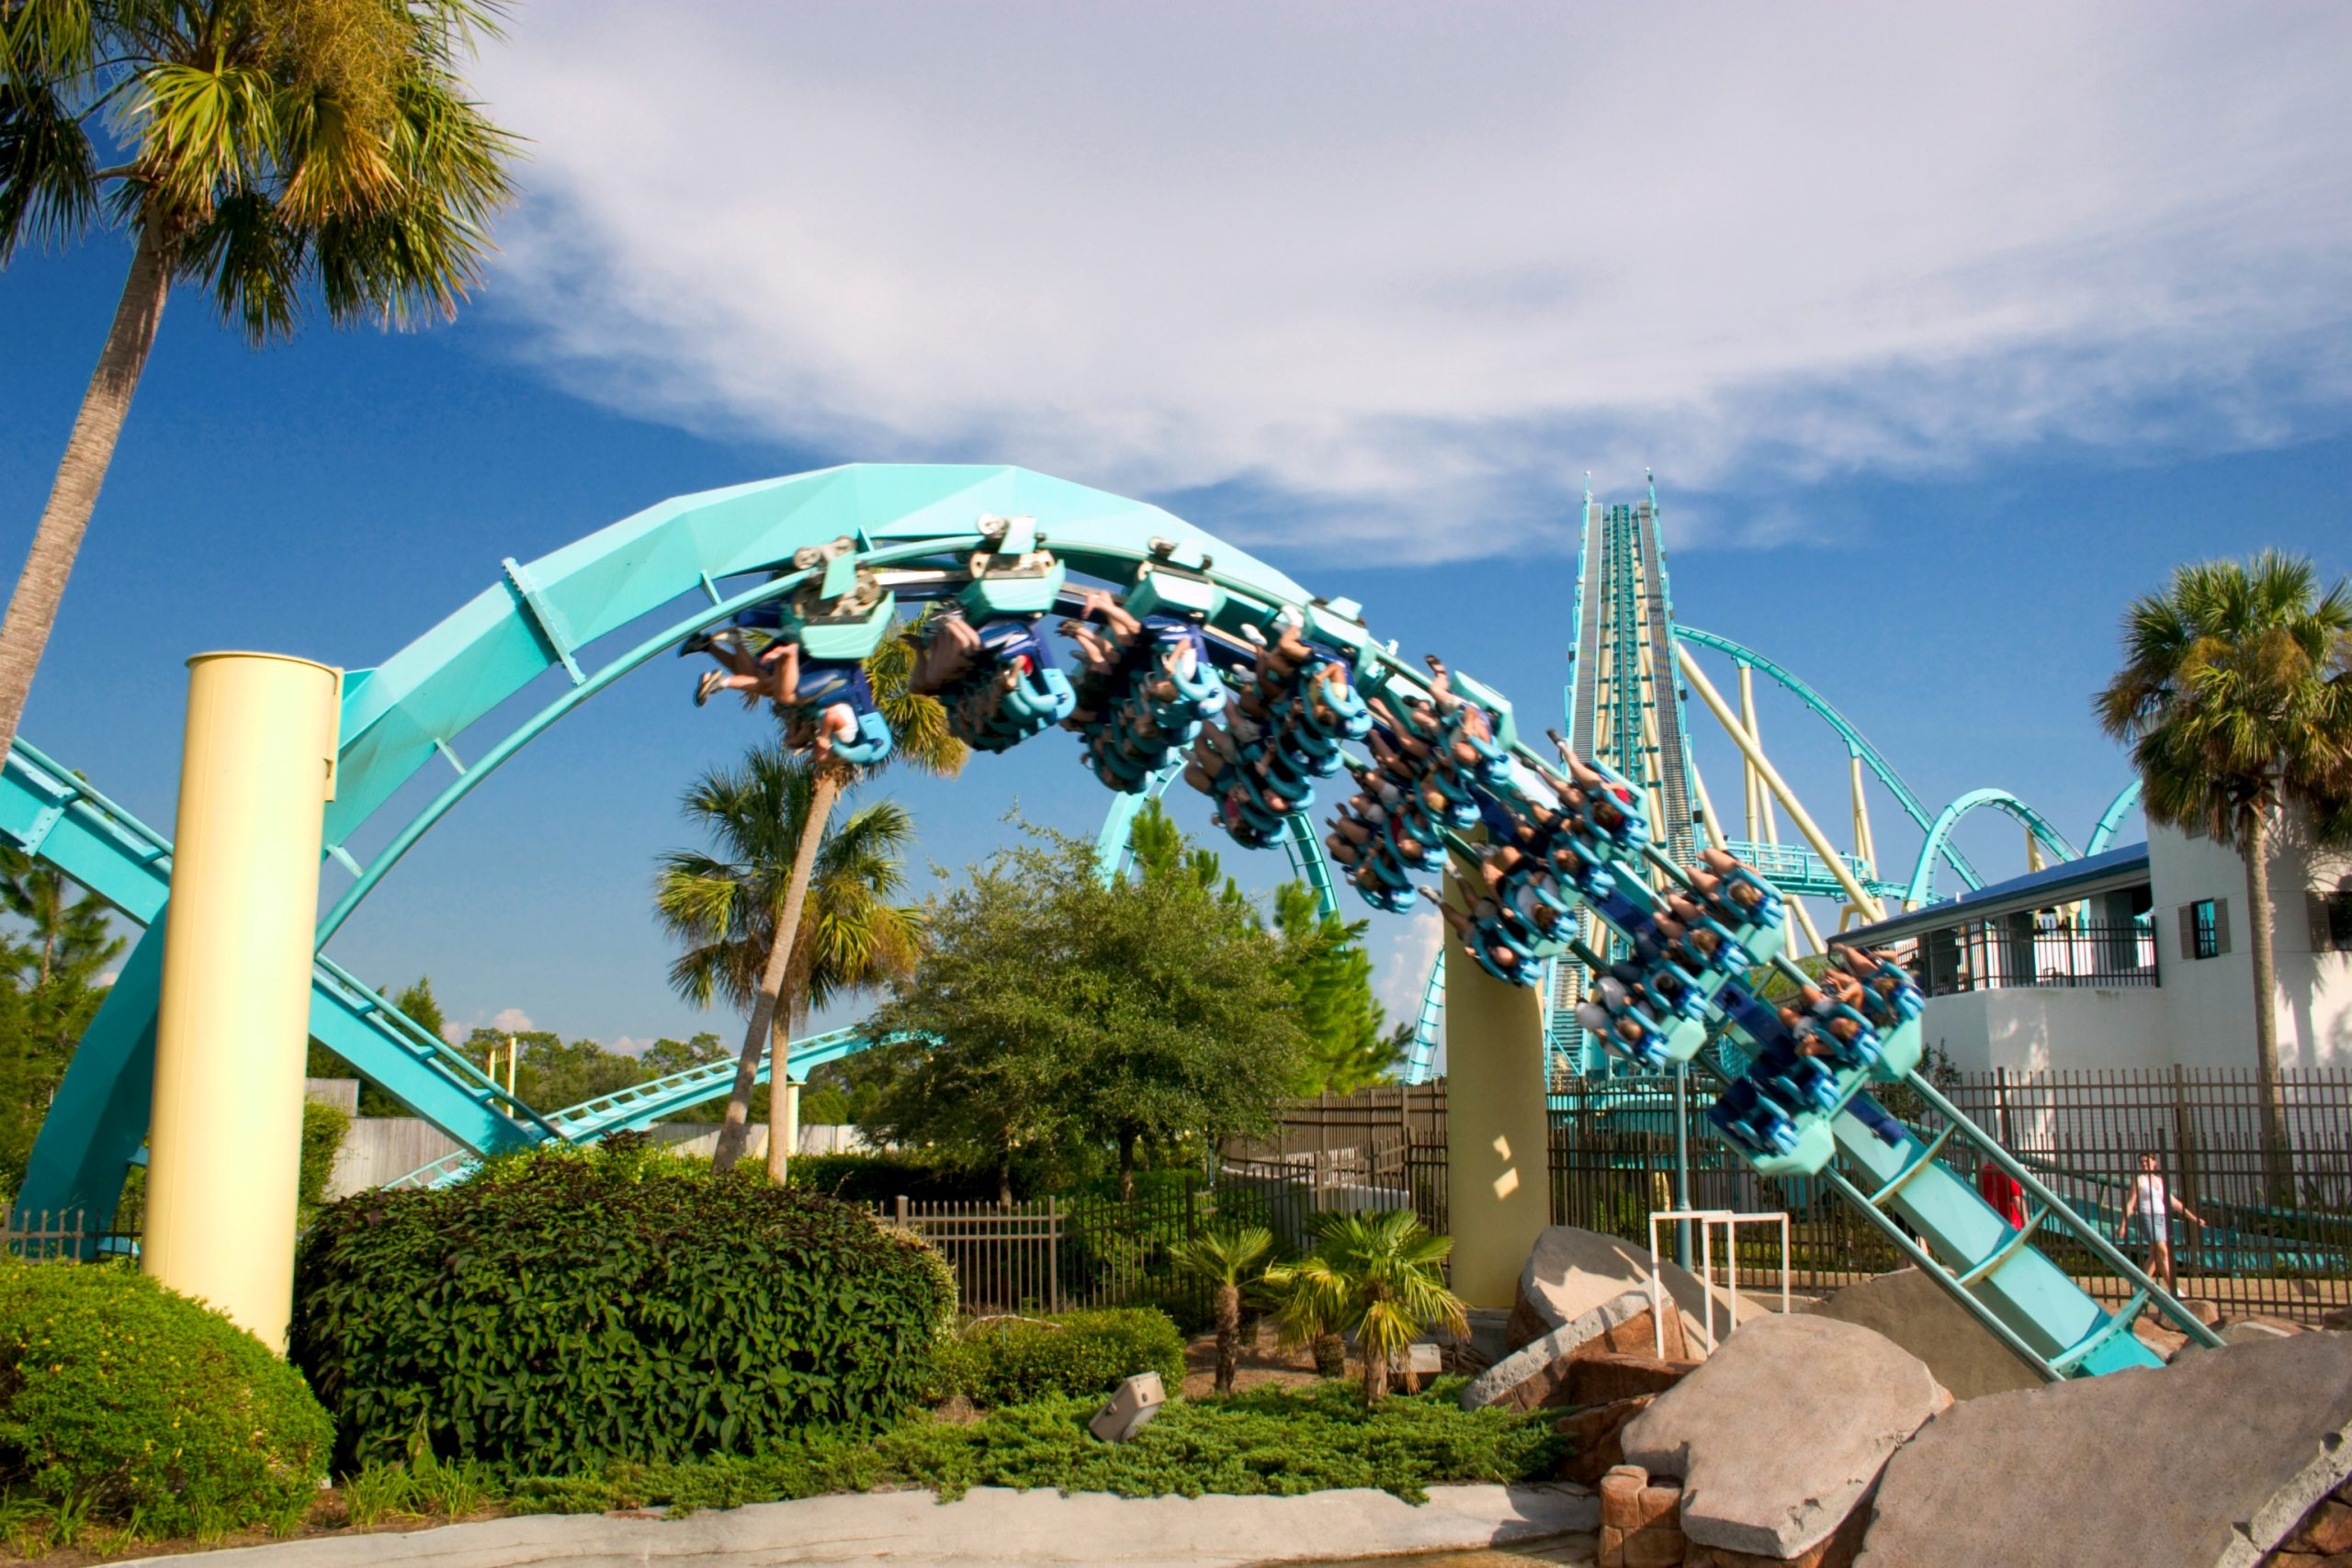 Top Theme Park In Orlando-Sea World